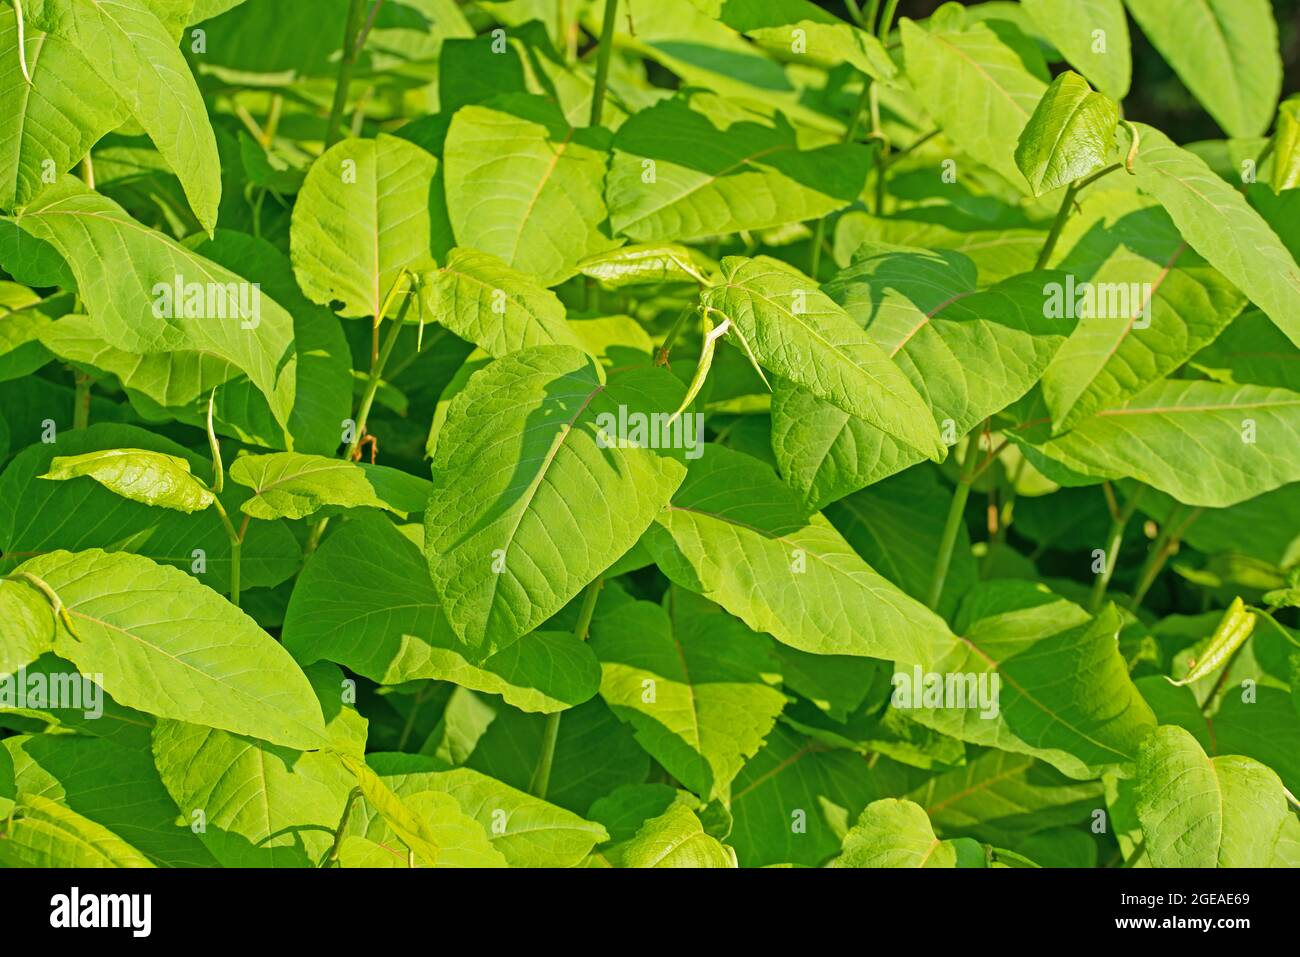 Young leaves of the Japanese knotweed, Fallopia japonica Stock Photo